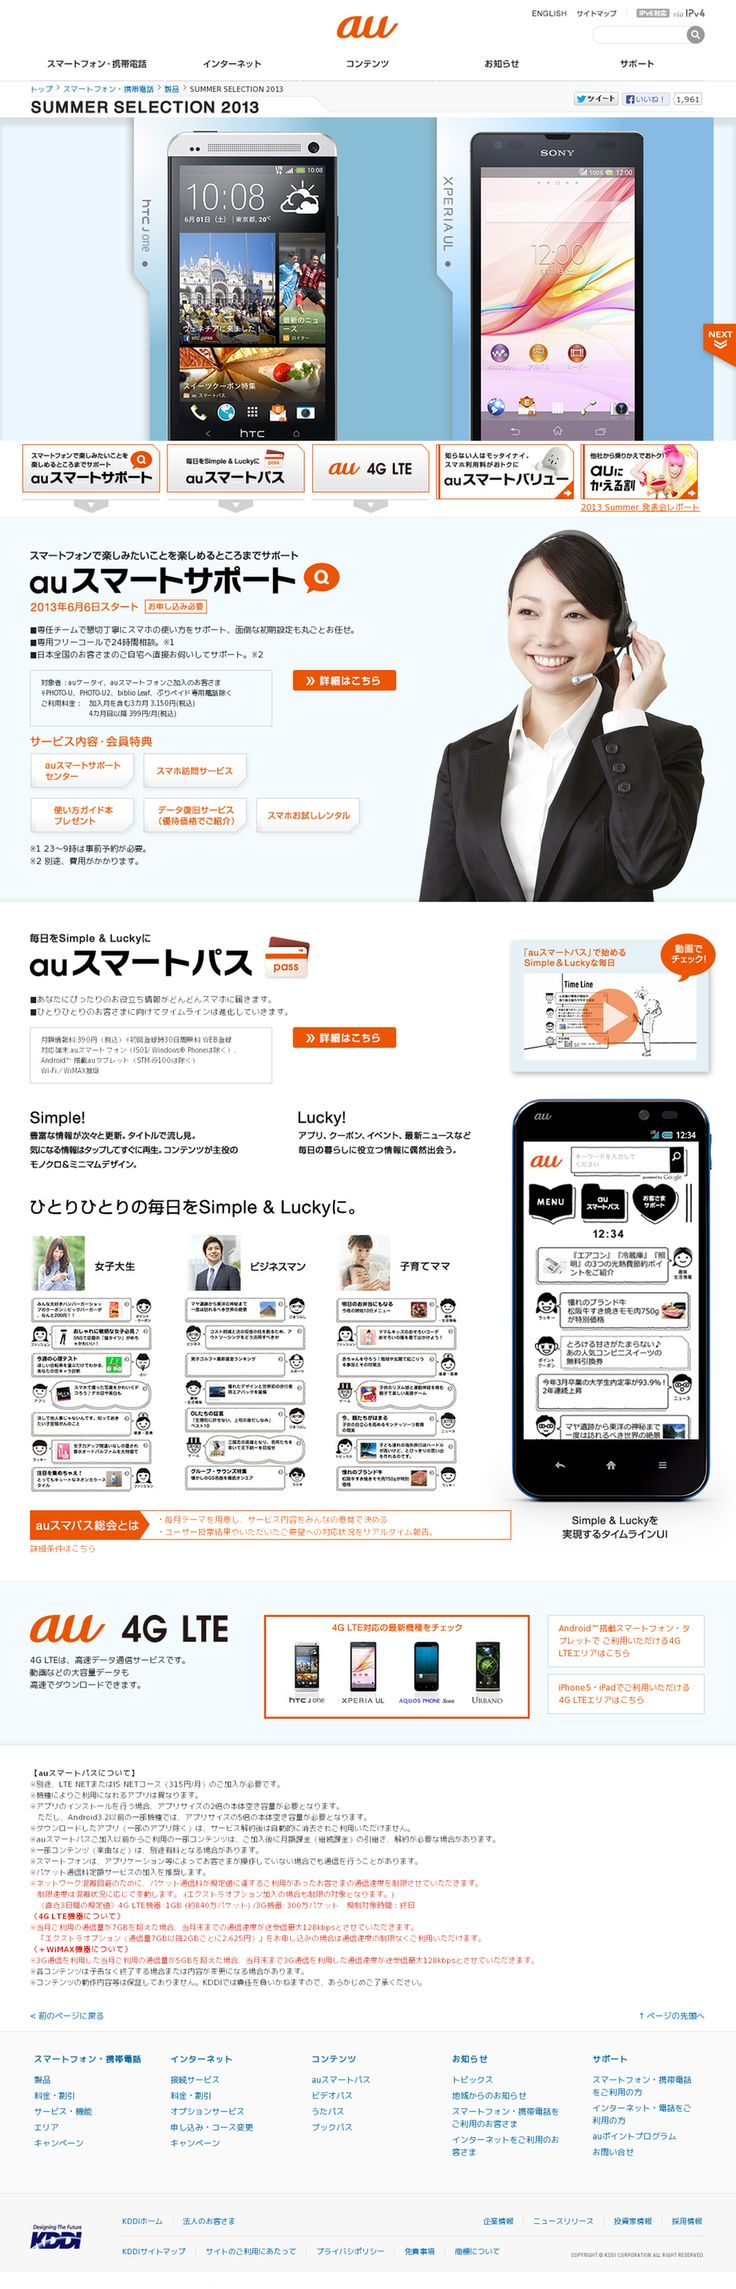 Website 'http://www.au.kddi.com/mobile/product/selection/' snapped on Snapito!